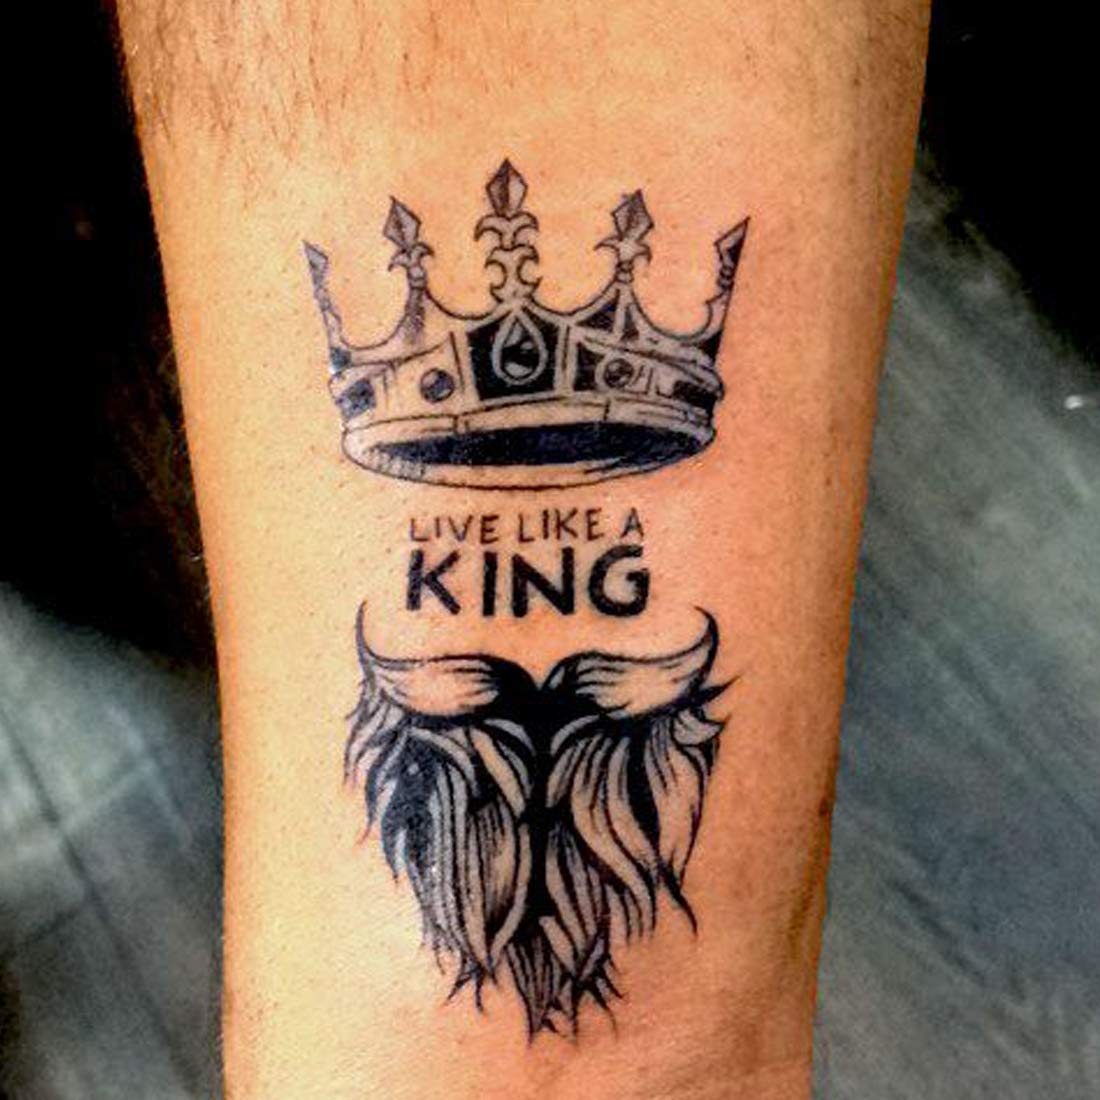 Voorkoms Like A King Mom Dad Men And Women Waterproof Temporary Body Tattoo Amazon In Beauty